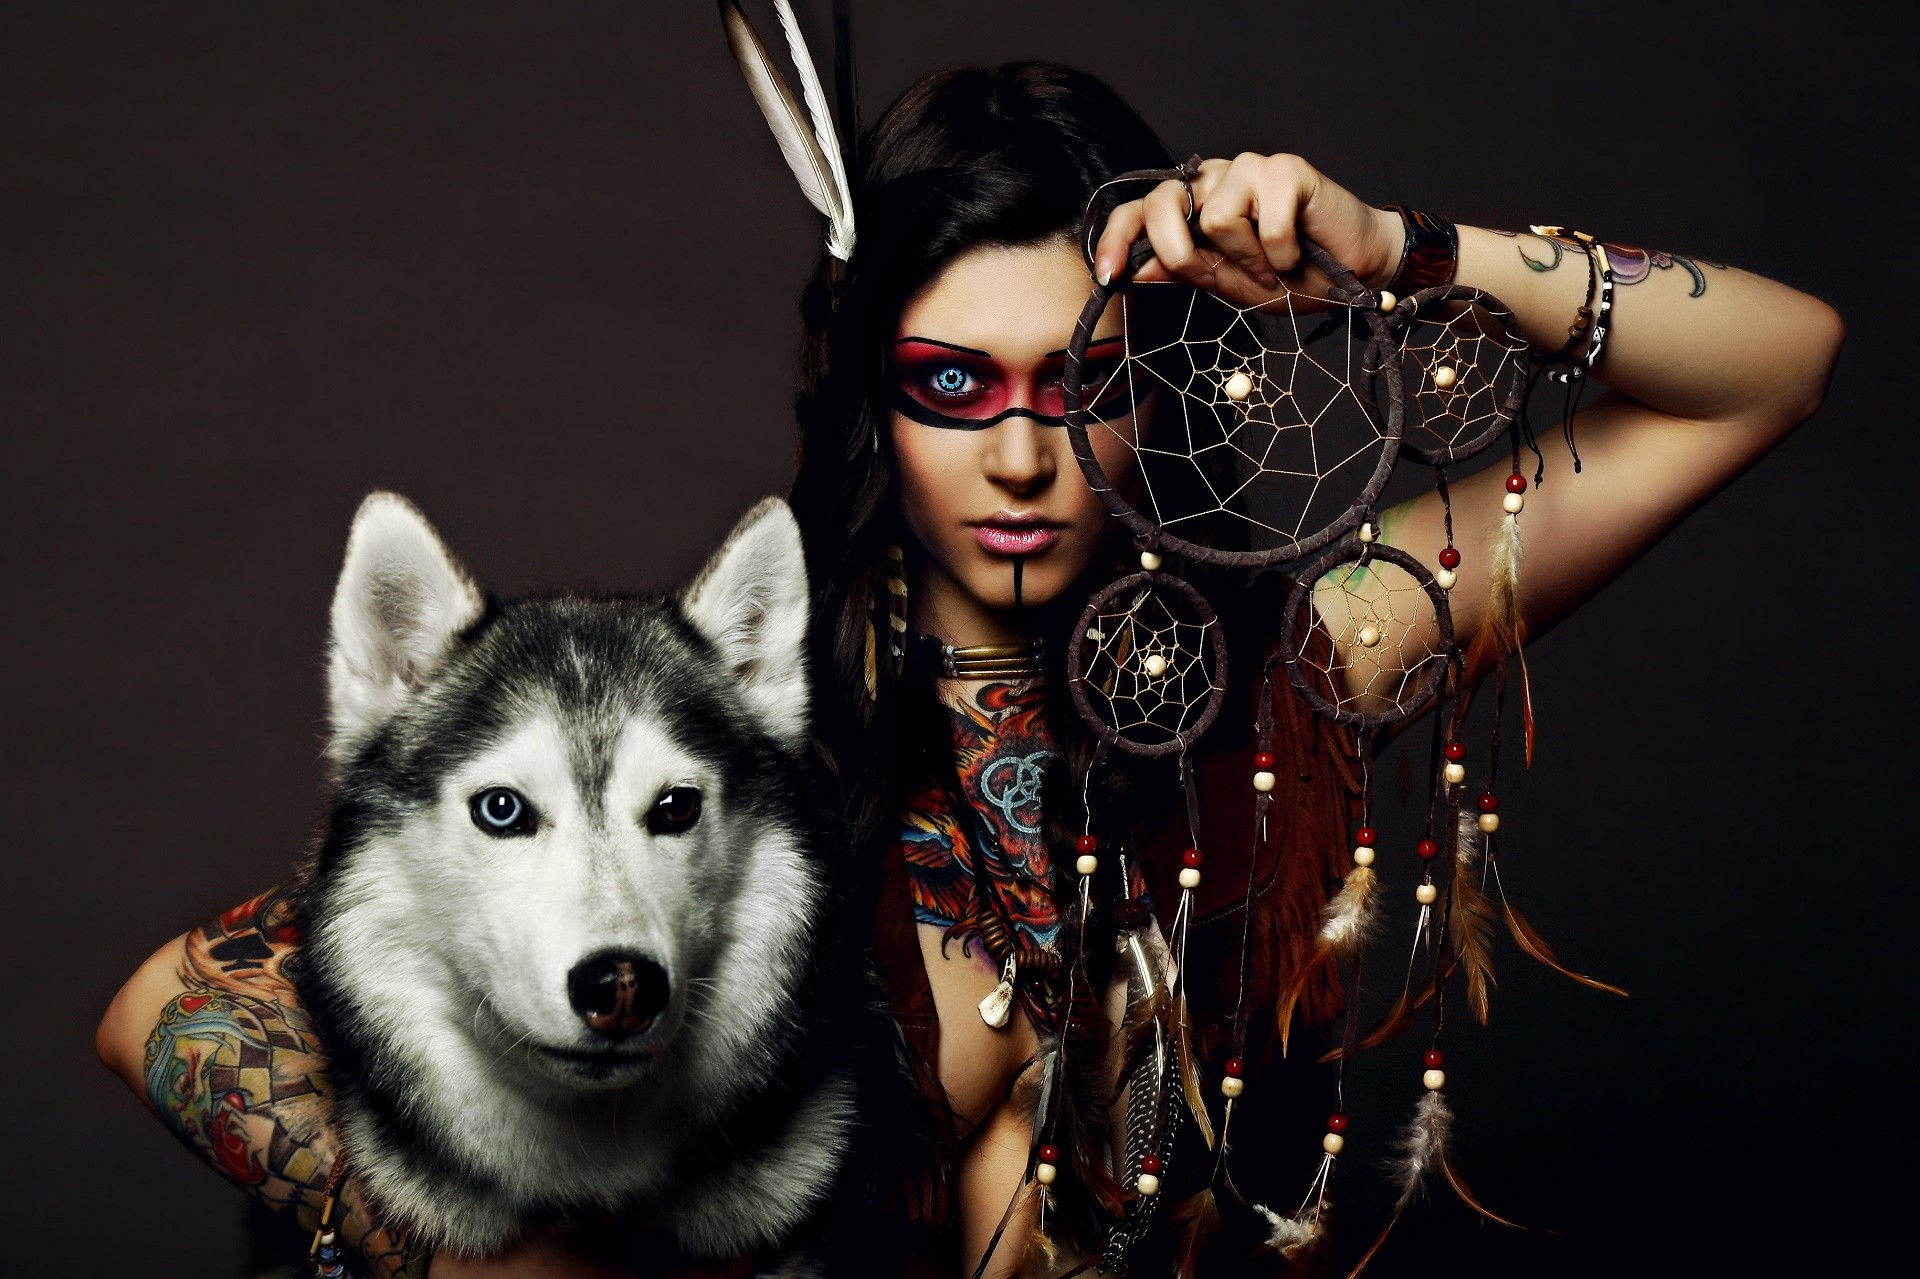 Women – Native American Husky Dog Dreamcatcher Wallpaper